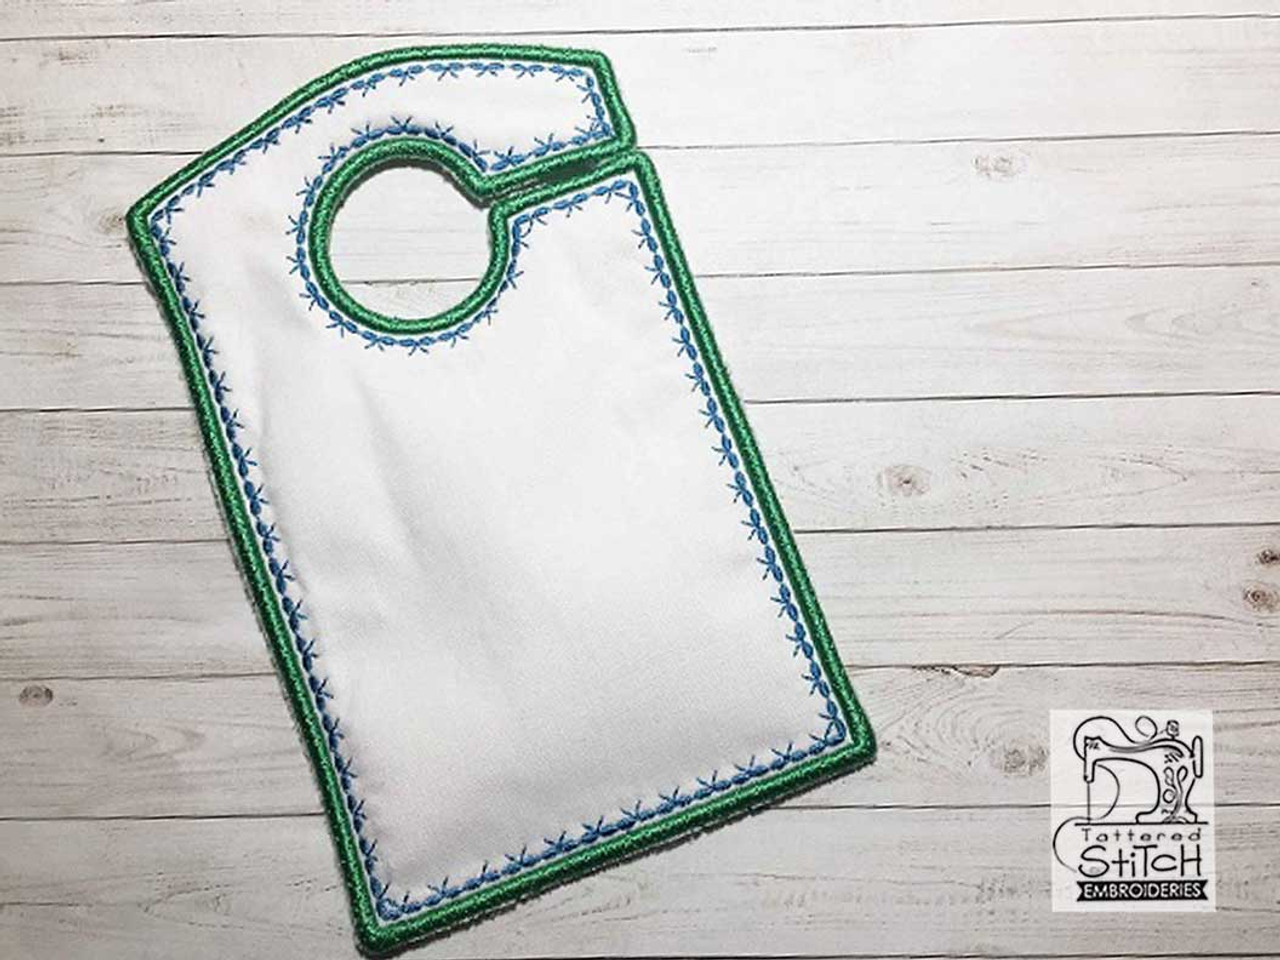 Blank Closet Organizer Fits A 5x7 Hoop Machine Embroidery Designs Tattered Stitch Embroideries